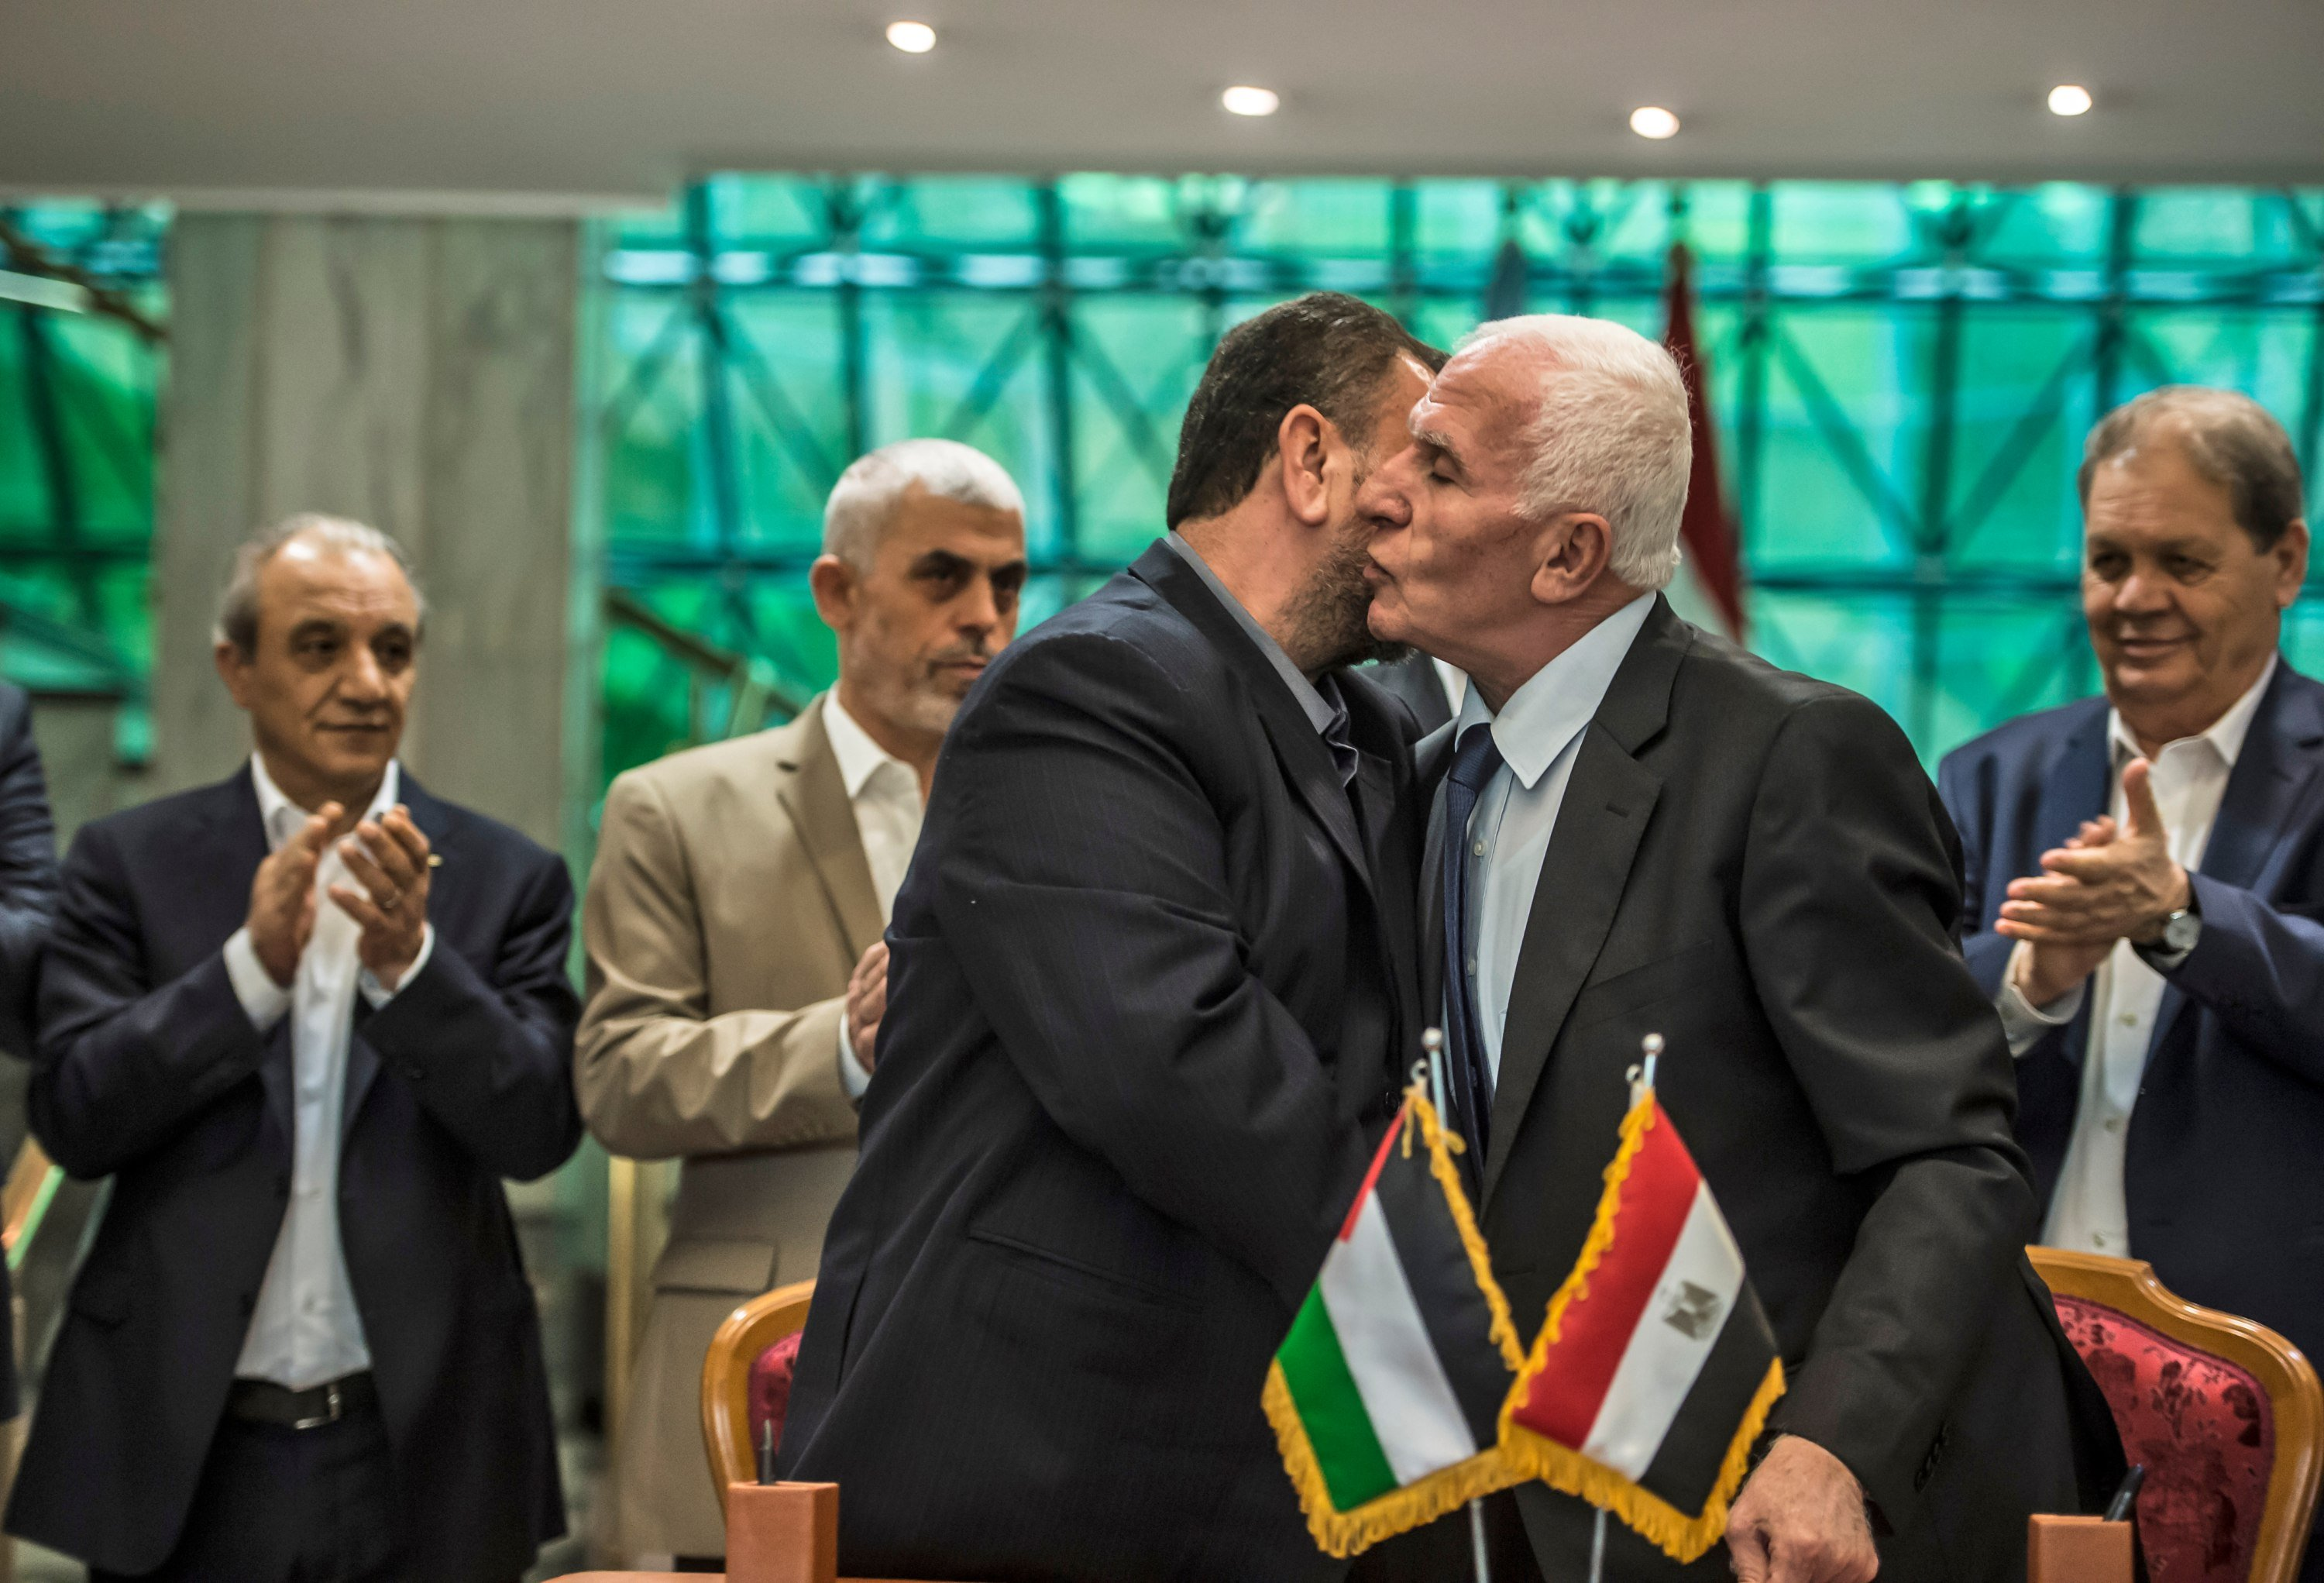 Fatah's Azzam al-Ahmad, right, and Saleh al-Aruri of Hamas kiss after signing a reconciliation deal in Cairo on 12 October 2017. The deal however failed to durably resolve the enmity between the two Palestinian parties (AFP)